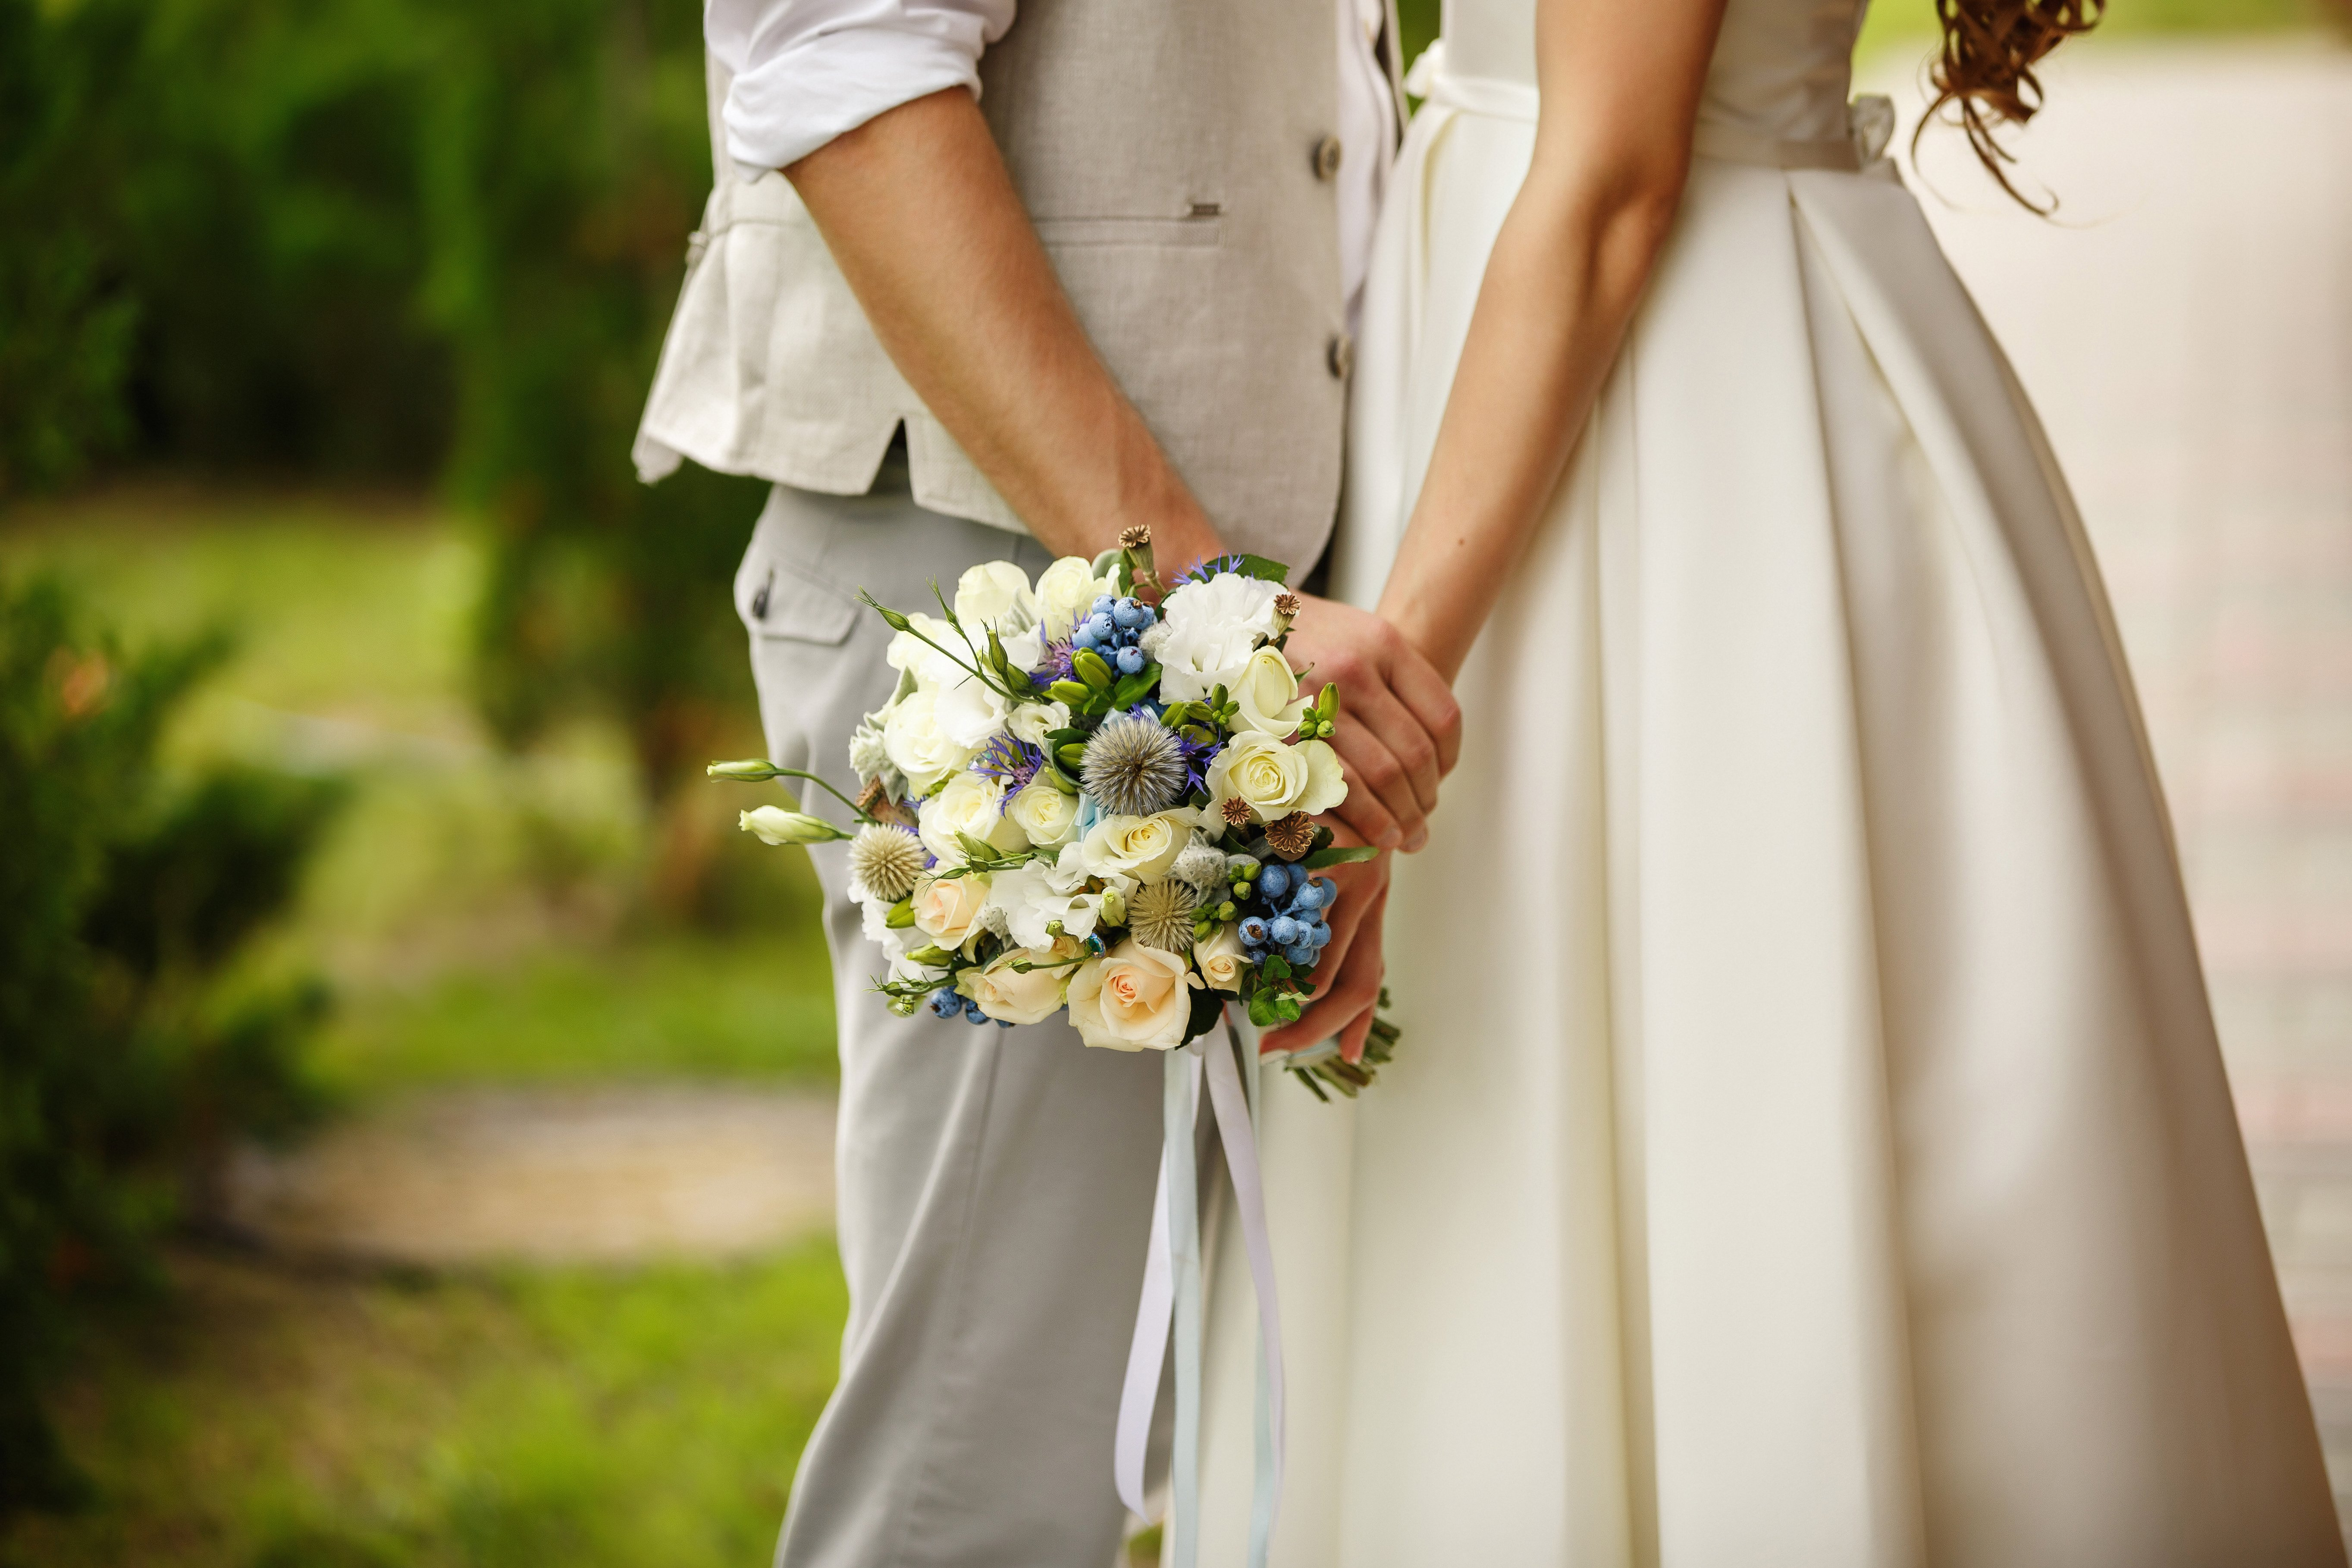 Wedding bouquet in hands of bride and groom in wedding day